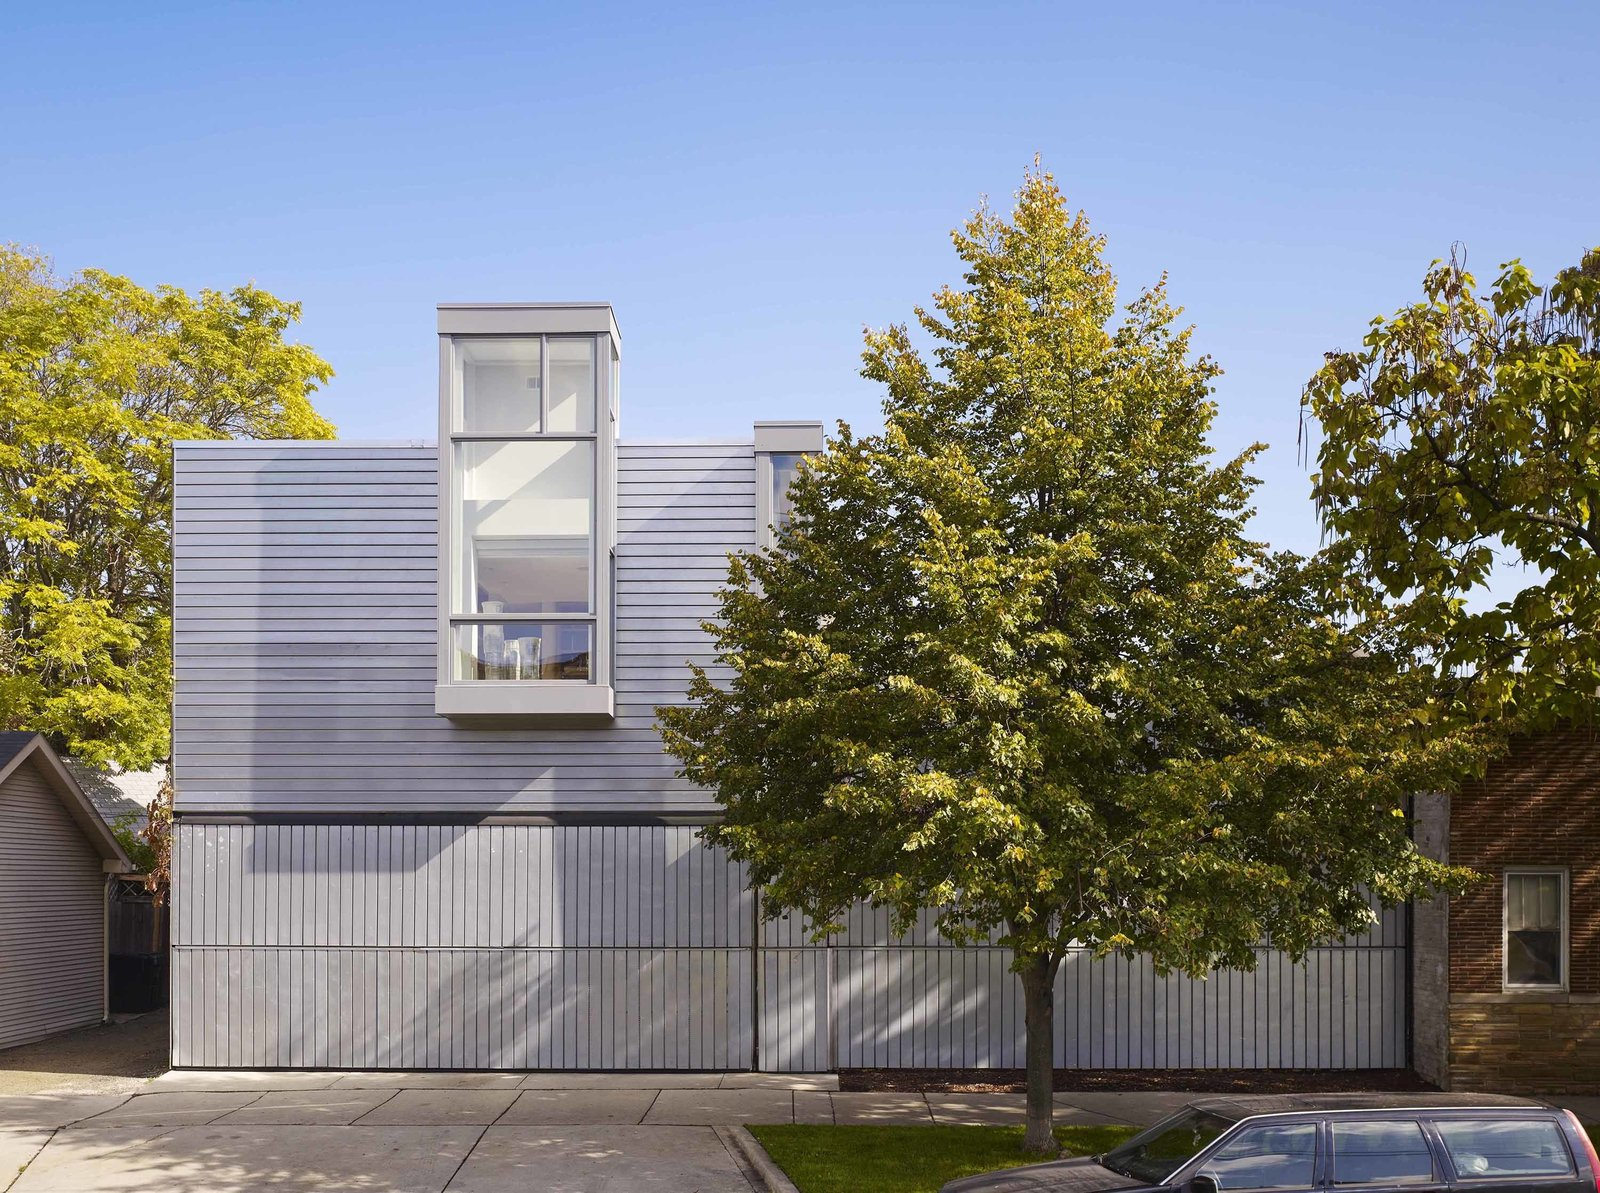 """The new two-story addition is clad in the same metal decking as the original one-story home. Principal Joe Valerio says this kind of decking is usually crafted using ribs of equal width to create a highly articulated surface. To avoid that look, he used ribs that alternate between very narrow and broad widths, to create a façade that """"has a monolithic quality.""""  Photo 1 of 6 in A Two-Story Addition Turned a Bachelor Pad Into a Comfortable Home For Two"""